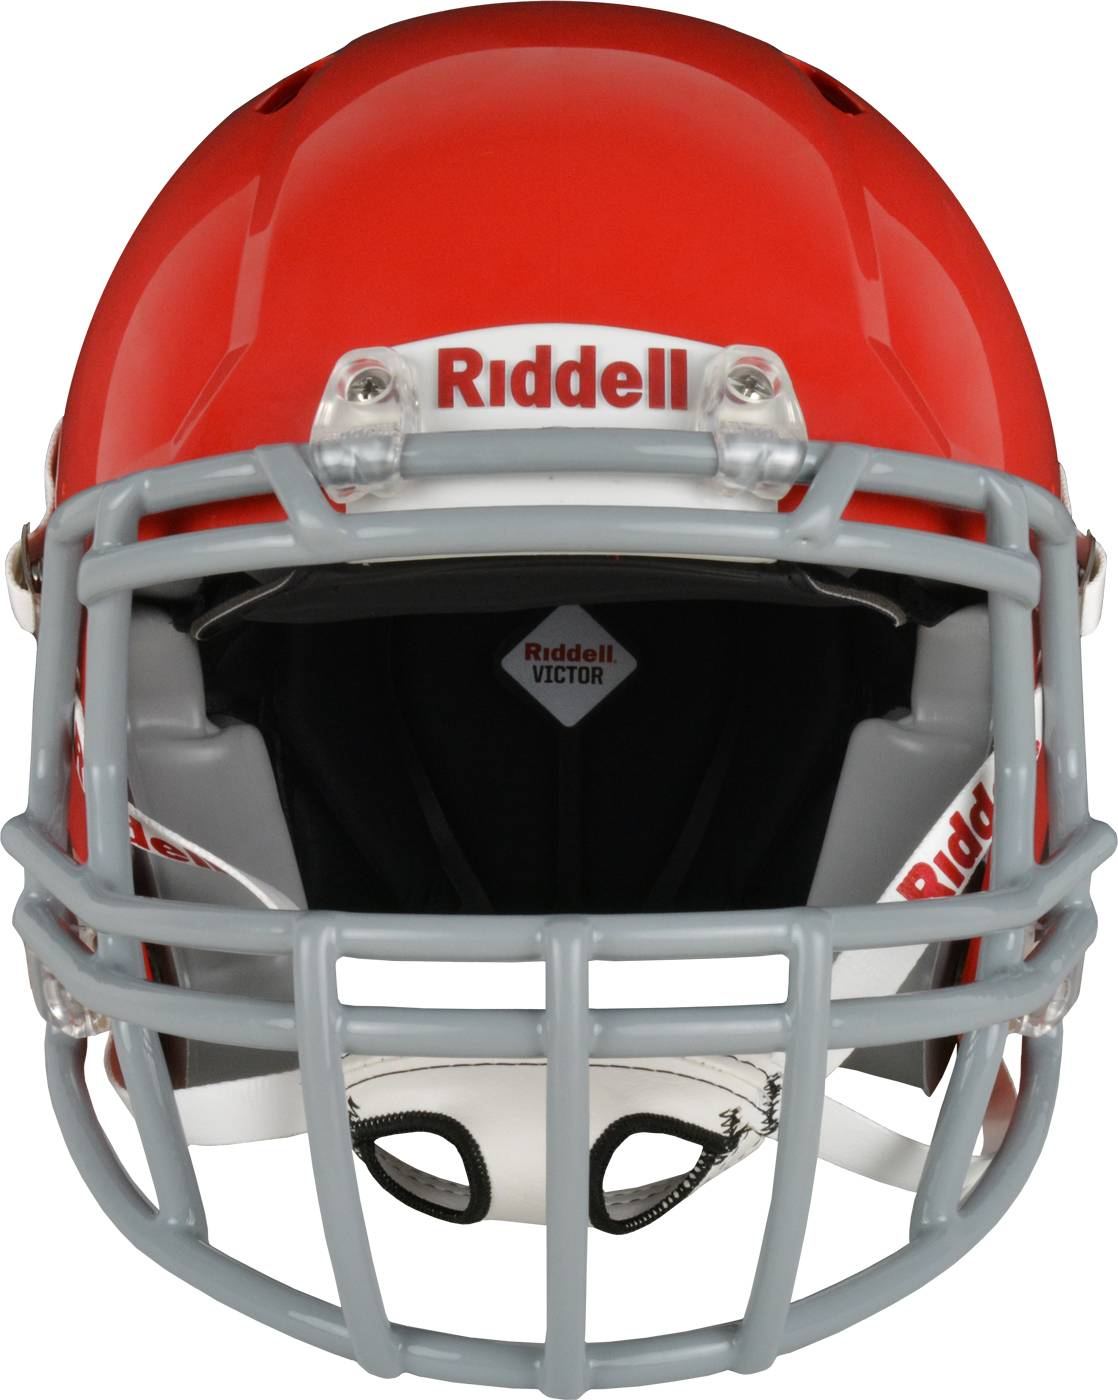 Riddell Victor Youth Football Helmet & Facemask